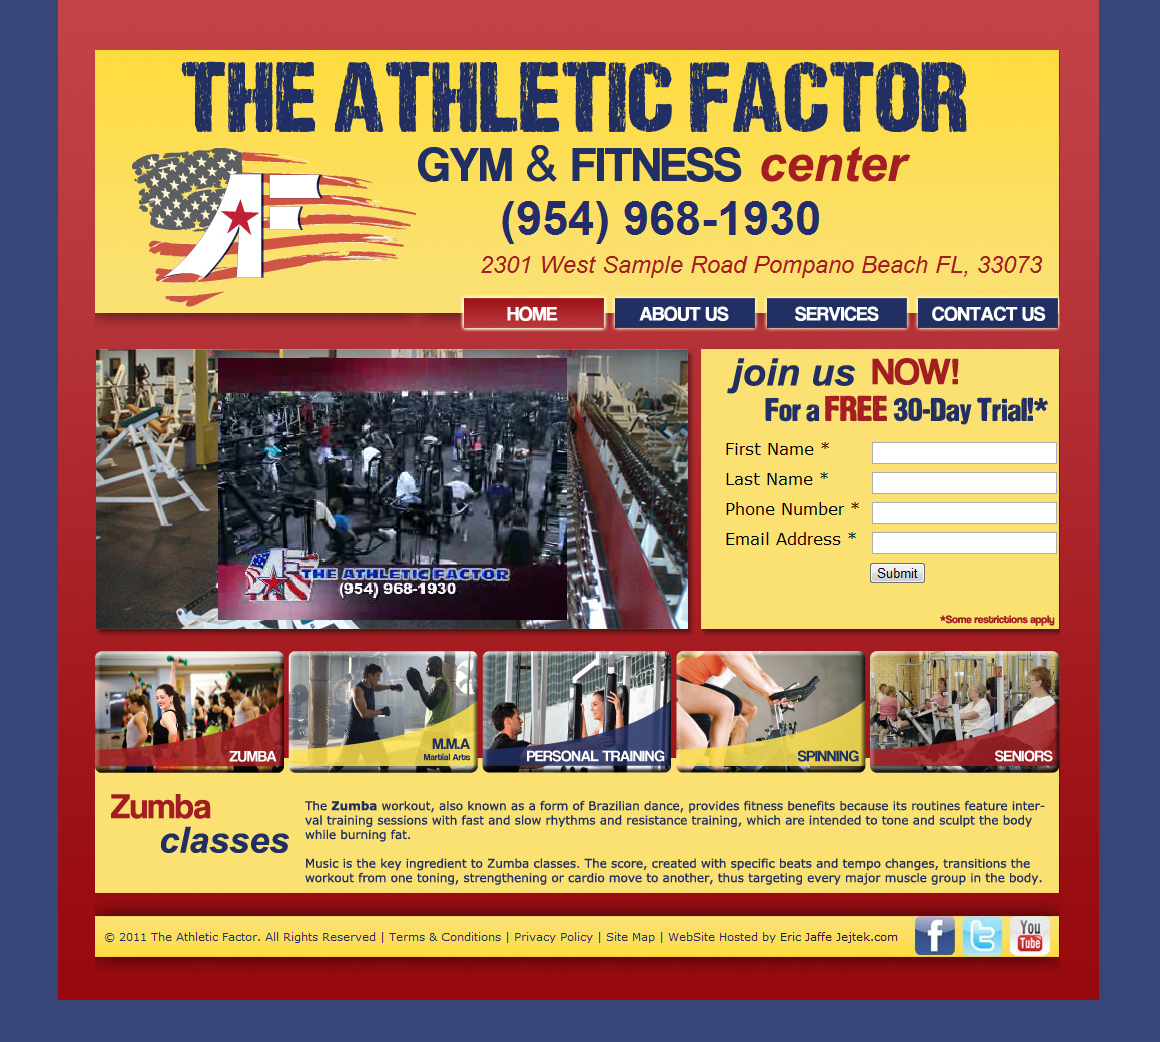 Website hosting for Athletic Factor Gym in pompano beach Florida